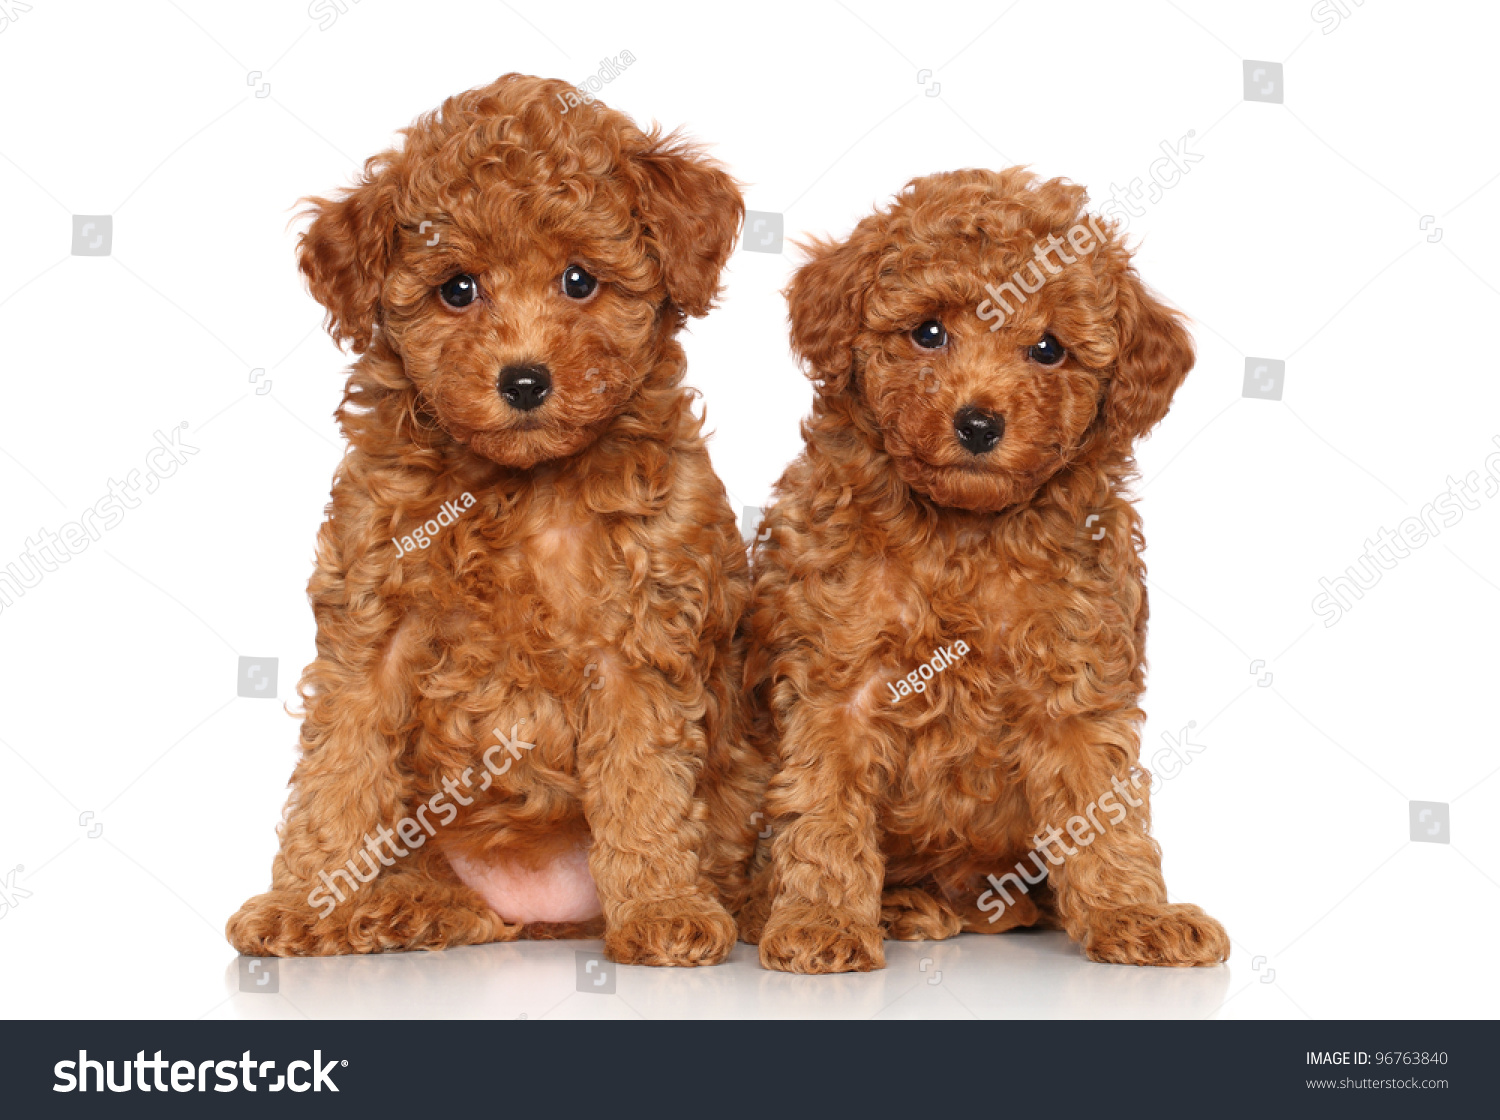 Red Toy Dogs : Red toy poodle puppies portrait on a white background